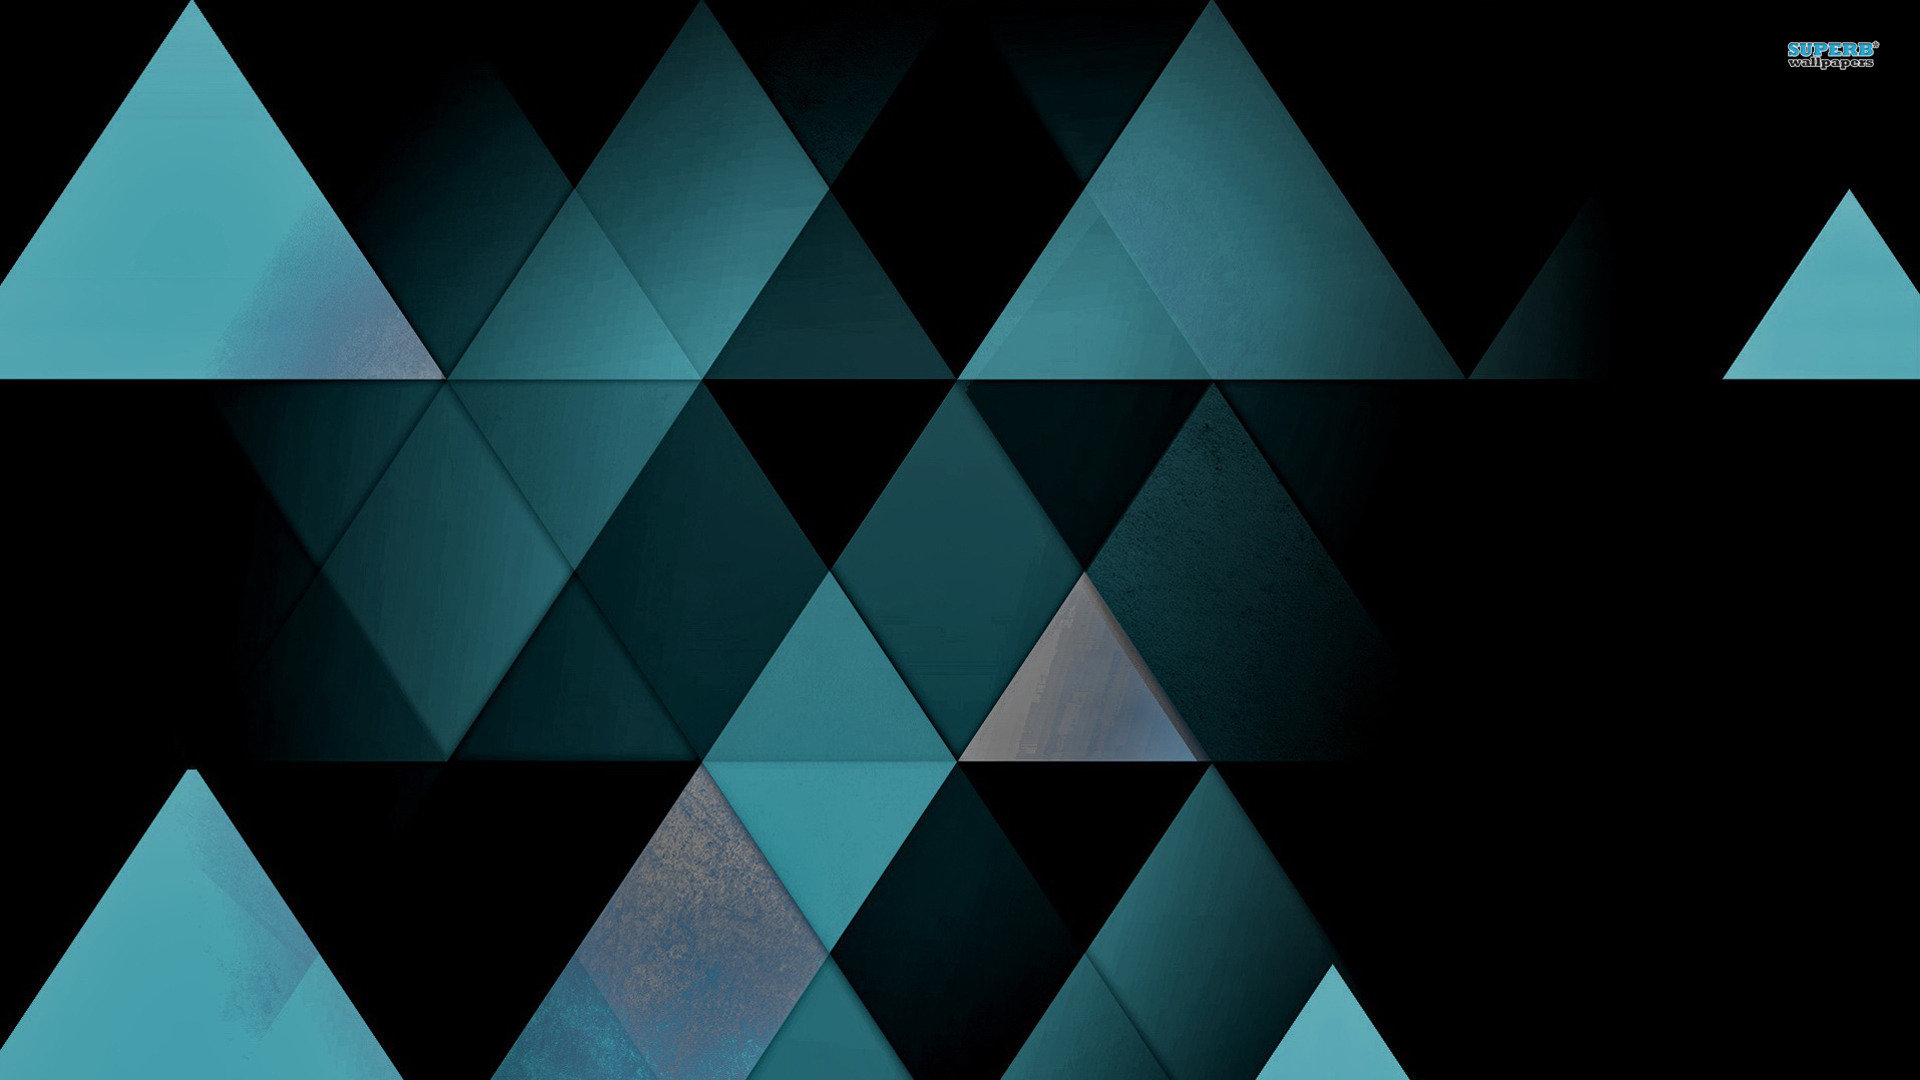 Mosaic triangles wallpaper 1920x1080